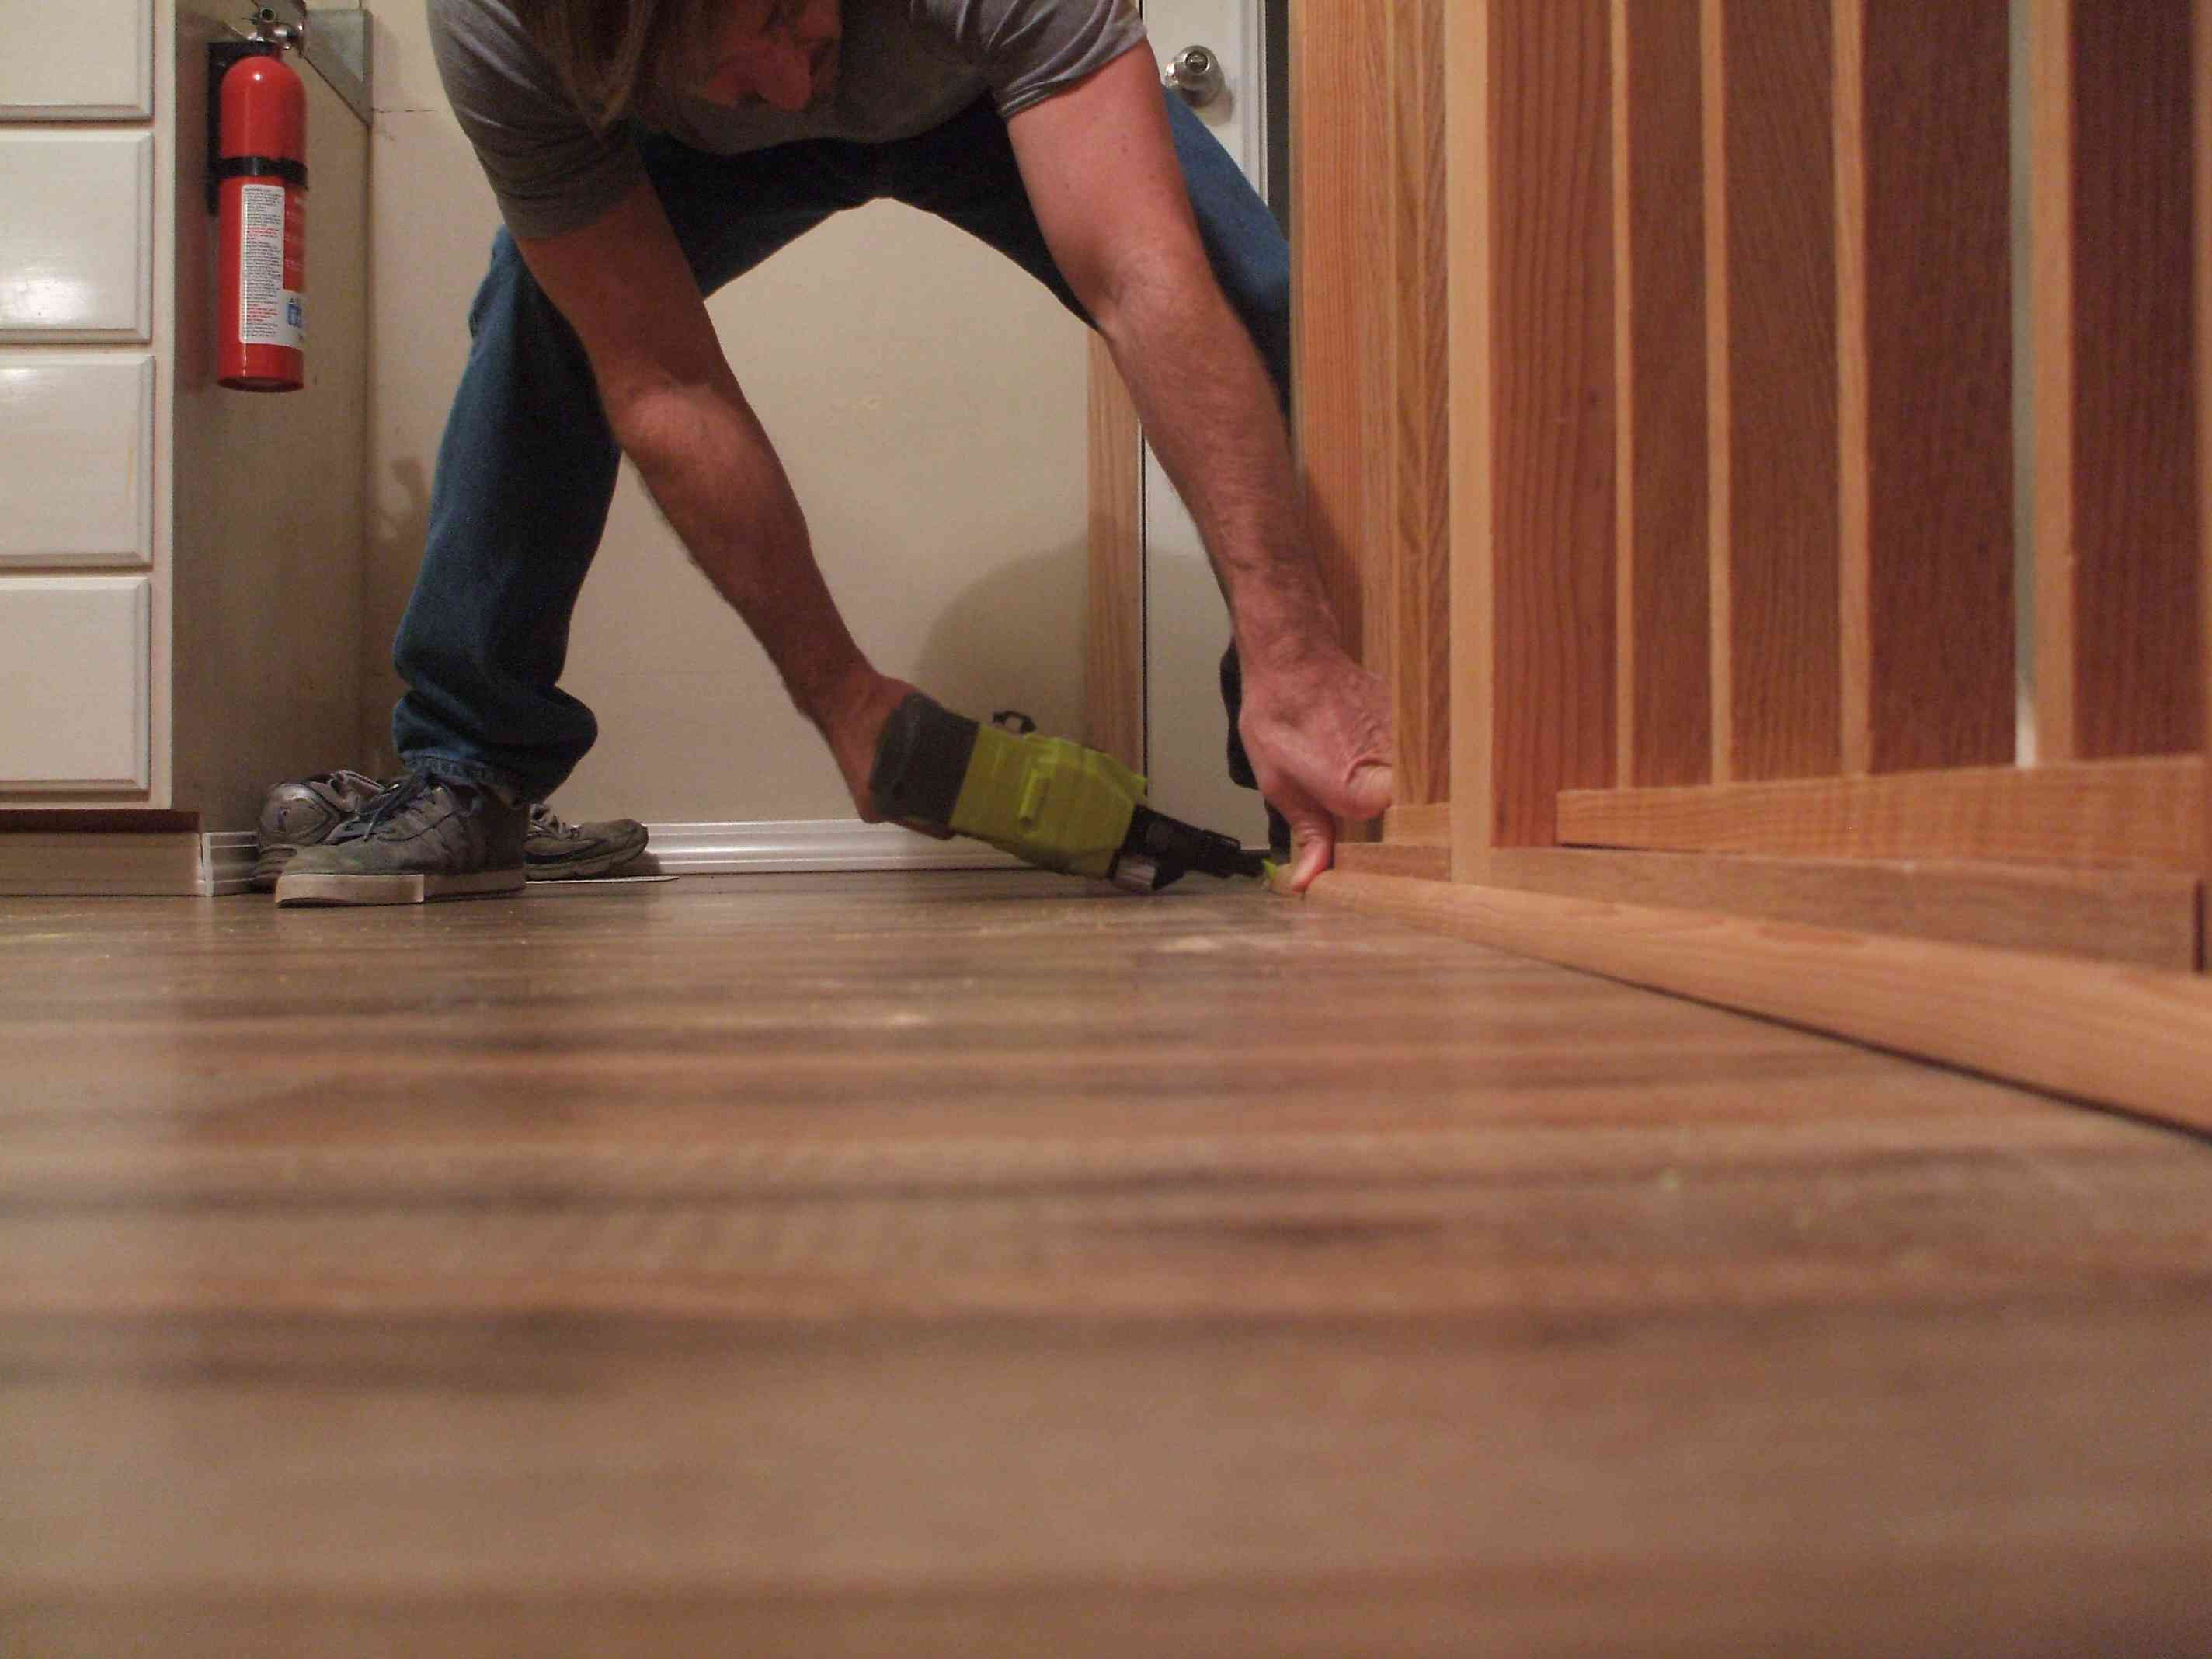 hardwood floor edge trim of how to install shoe molding or quarter round molding for nail molding in place with brad nailer 56a49e555f9b58b7d0d7de01 jpg